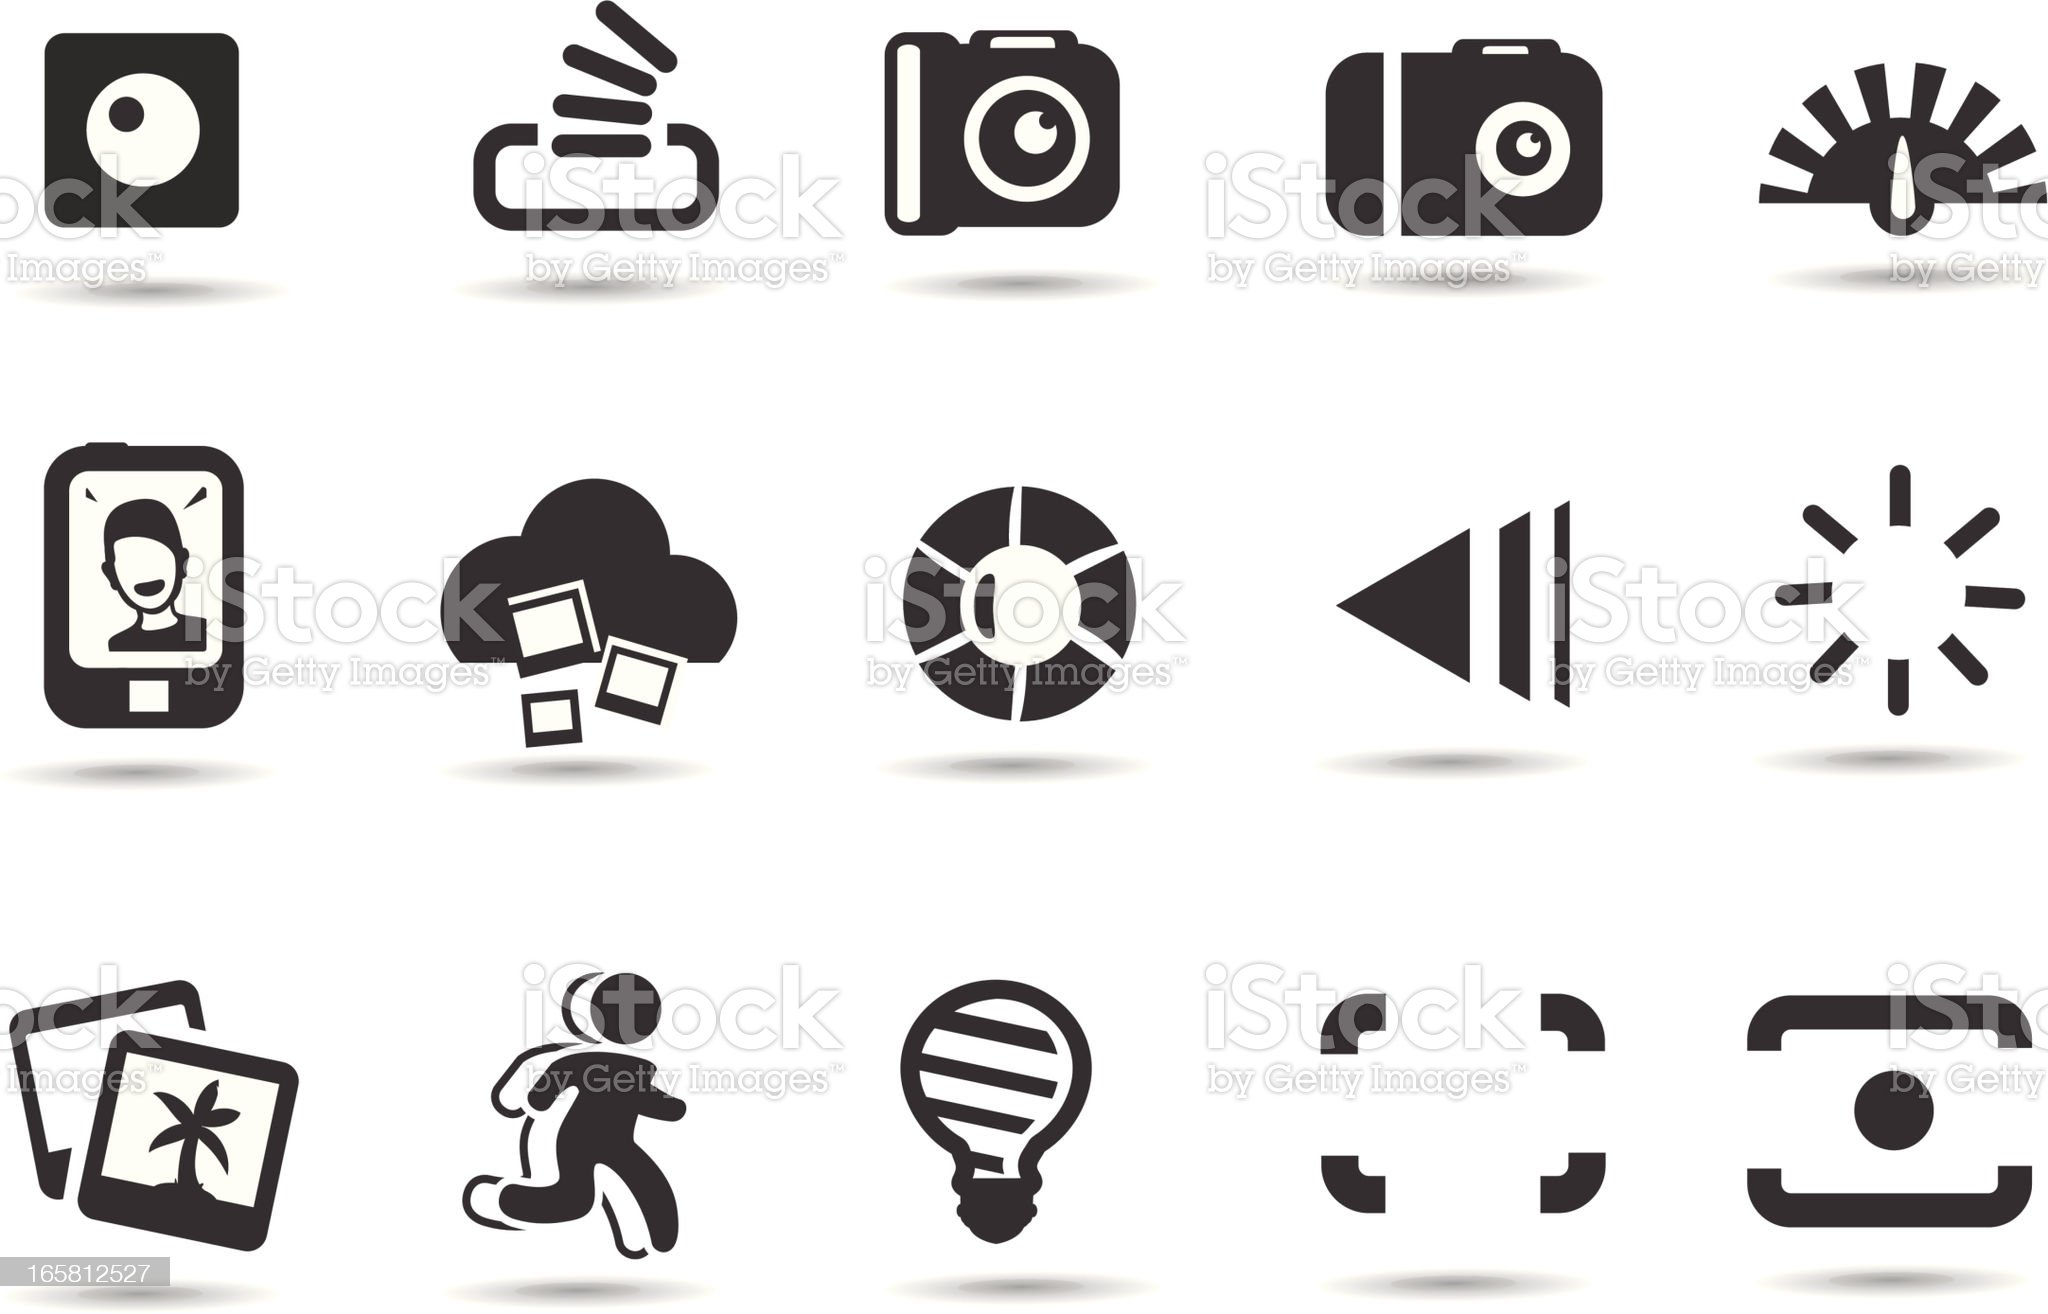 Photo Interface Icons royalty-free stock vector art